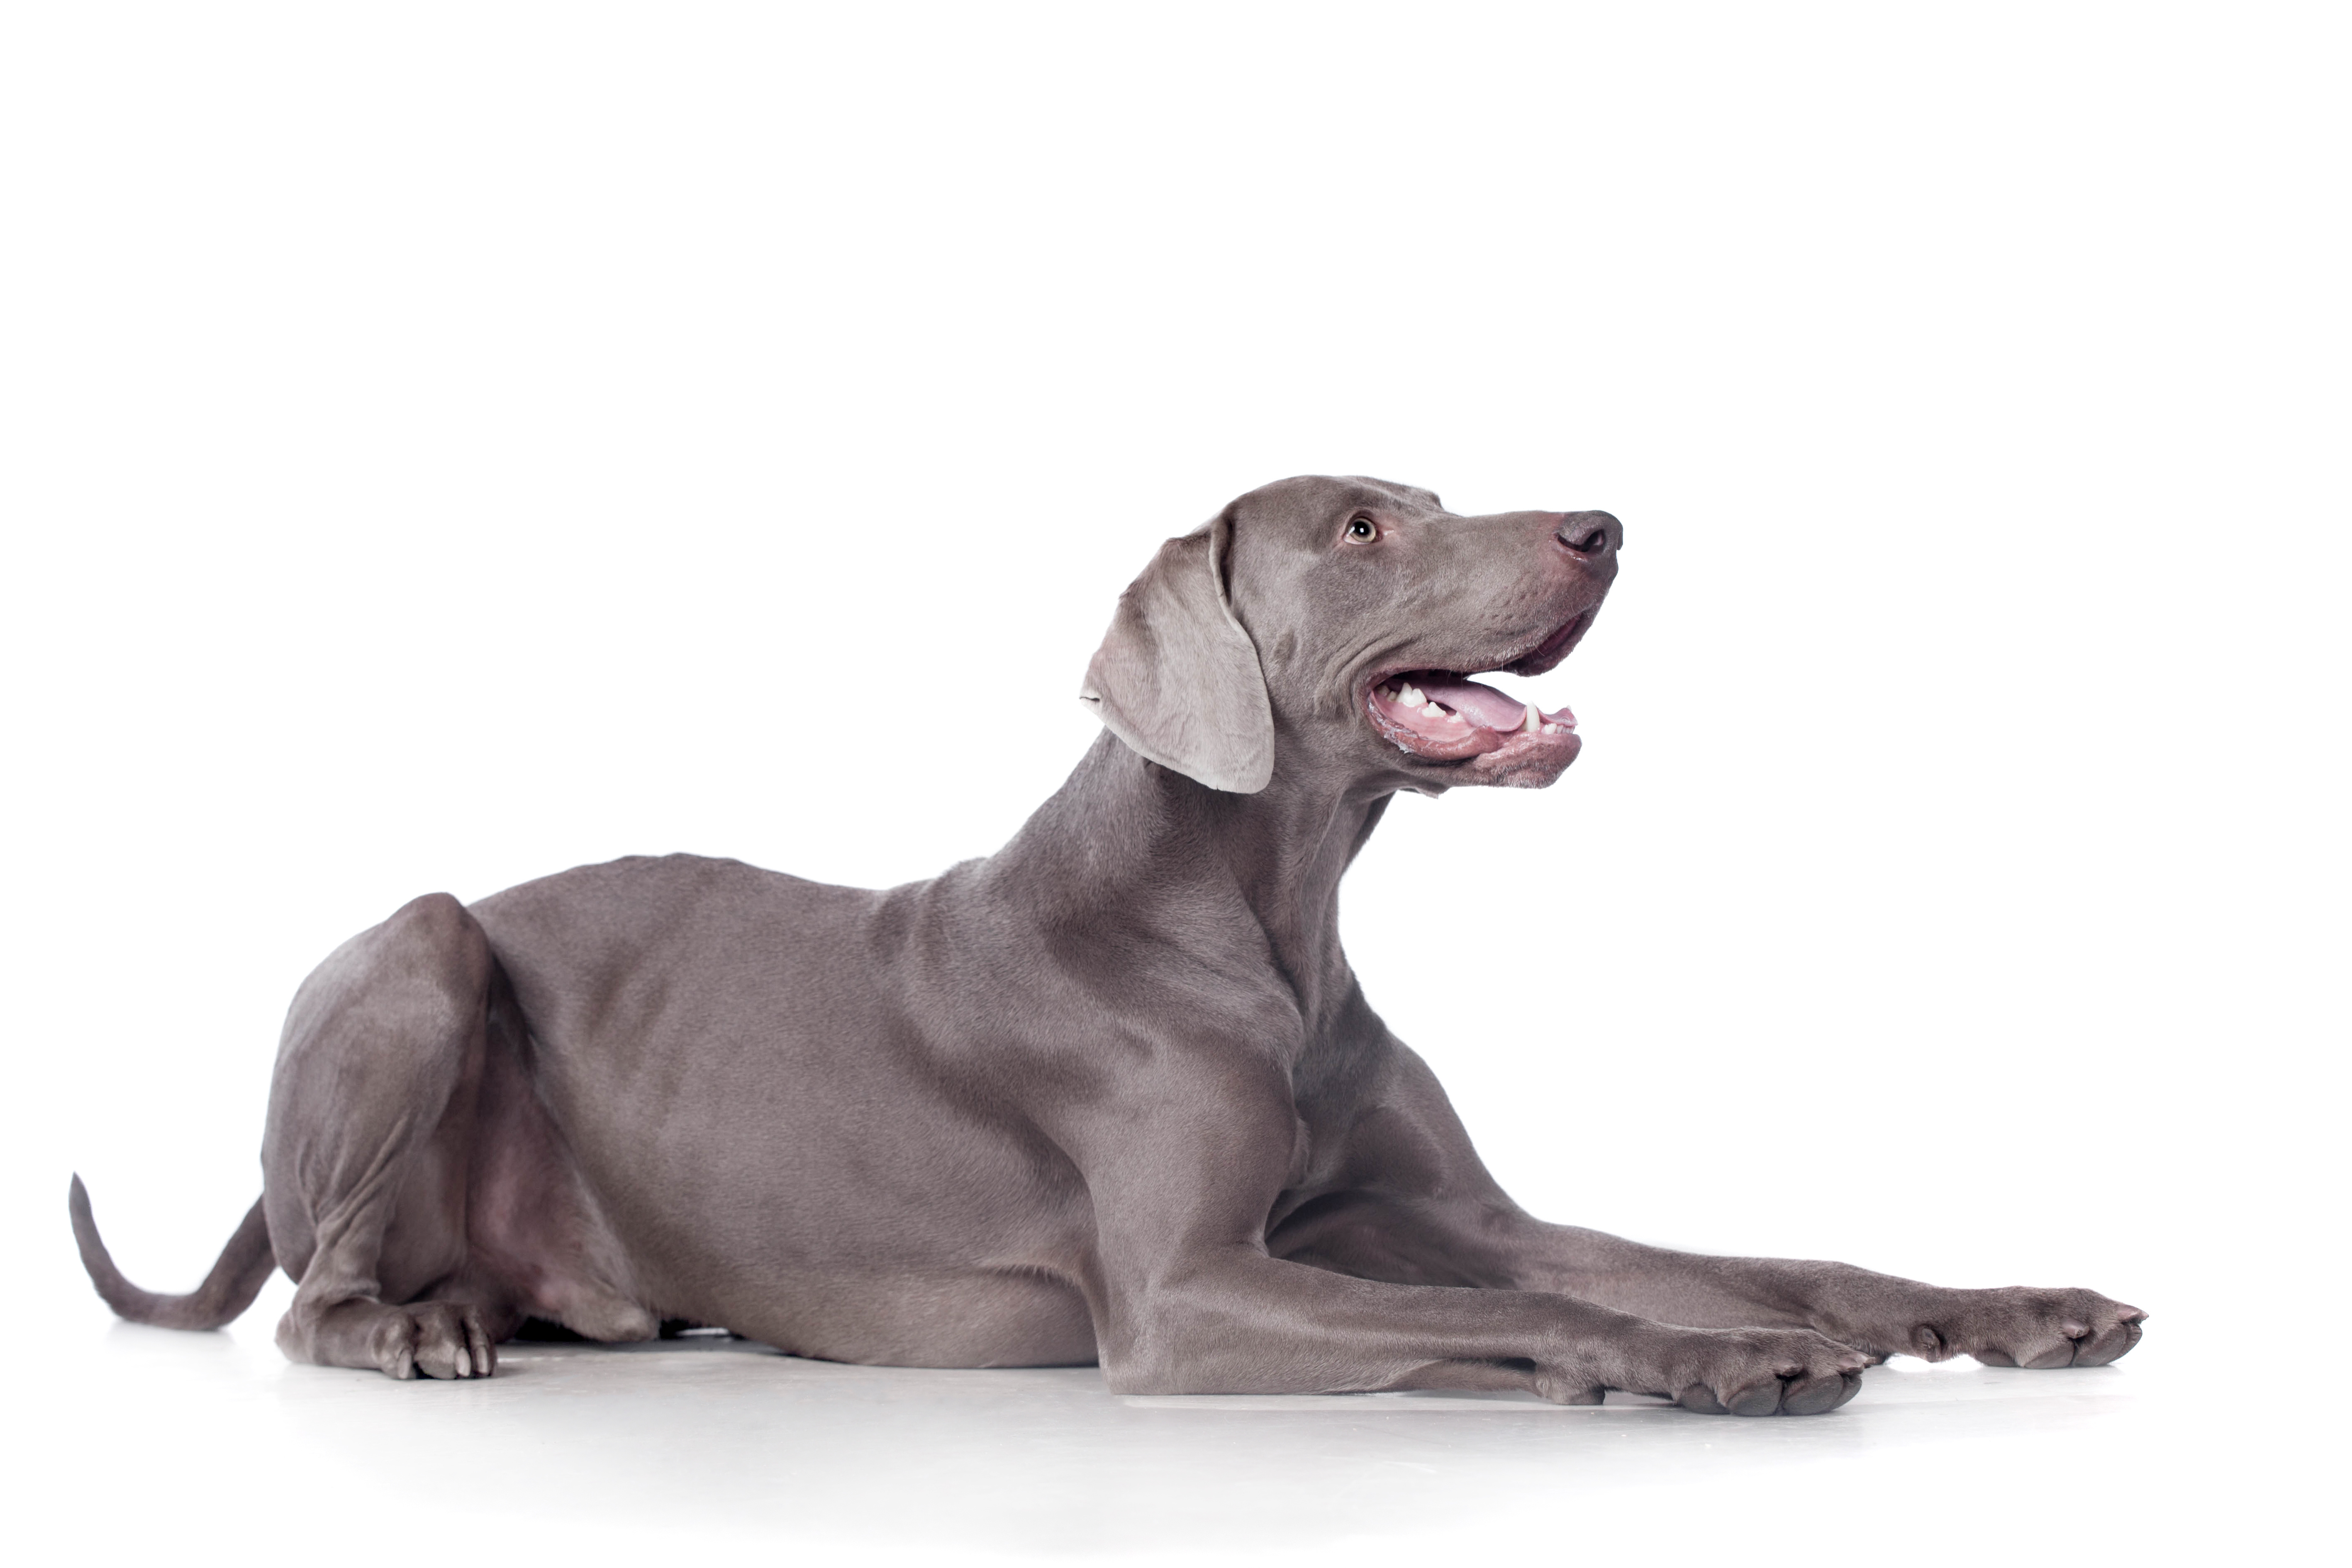 Weimaraner dog lying down in front of white background